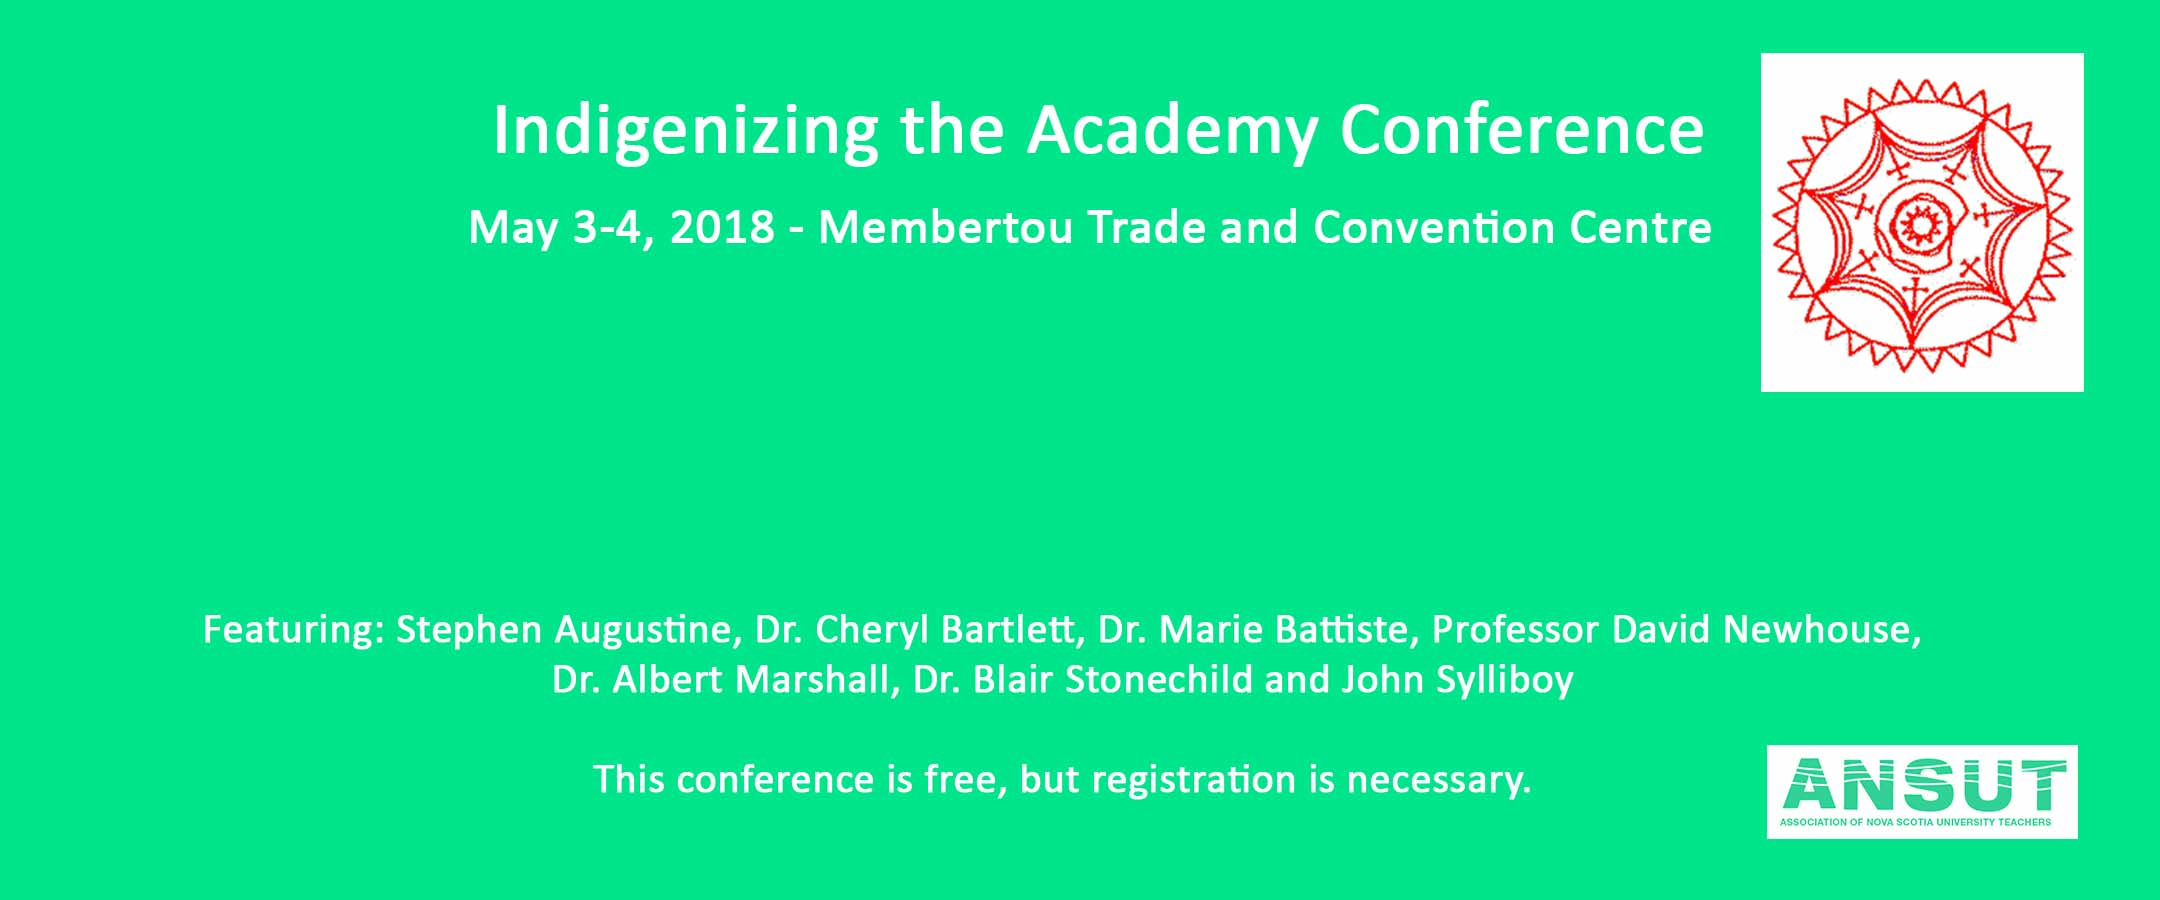 Conference - All Welcome